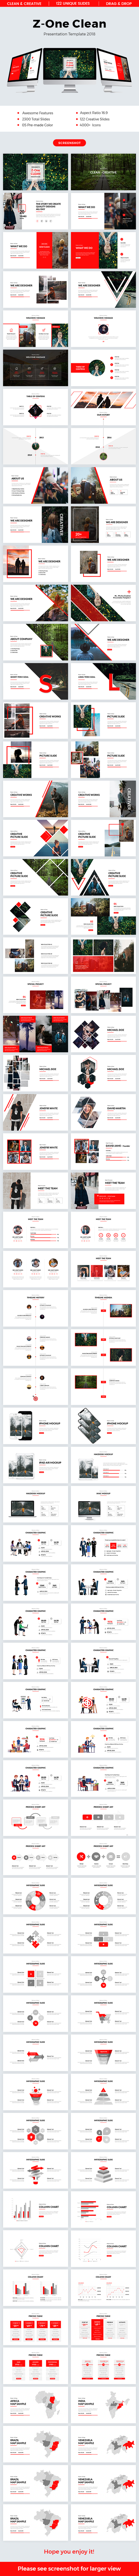 Z-One Clean Powerpoint Template 2018 - Creative PowerPoint Templates